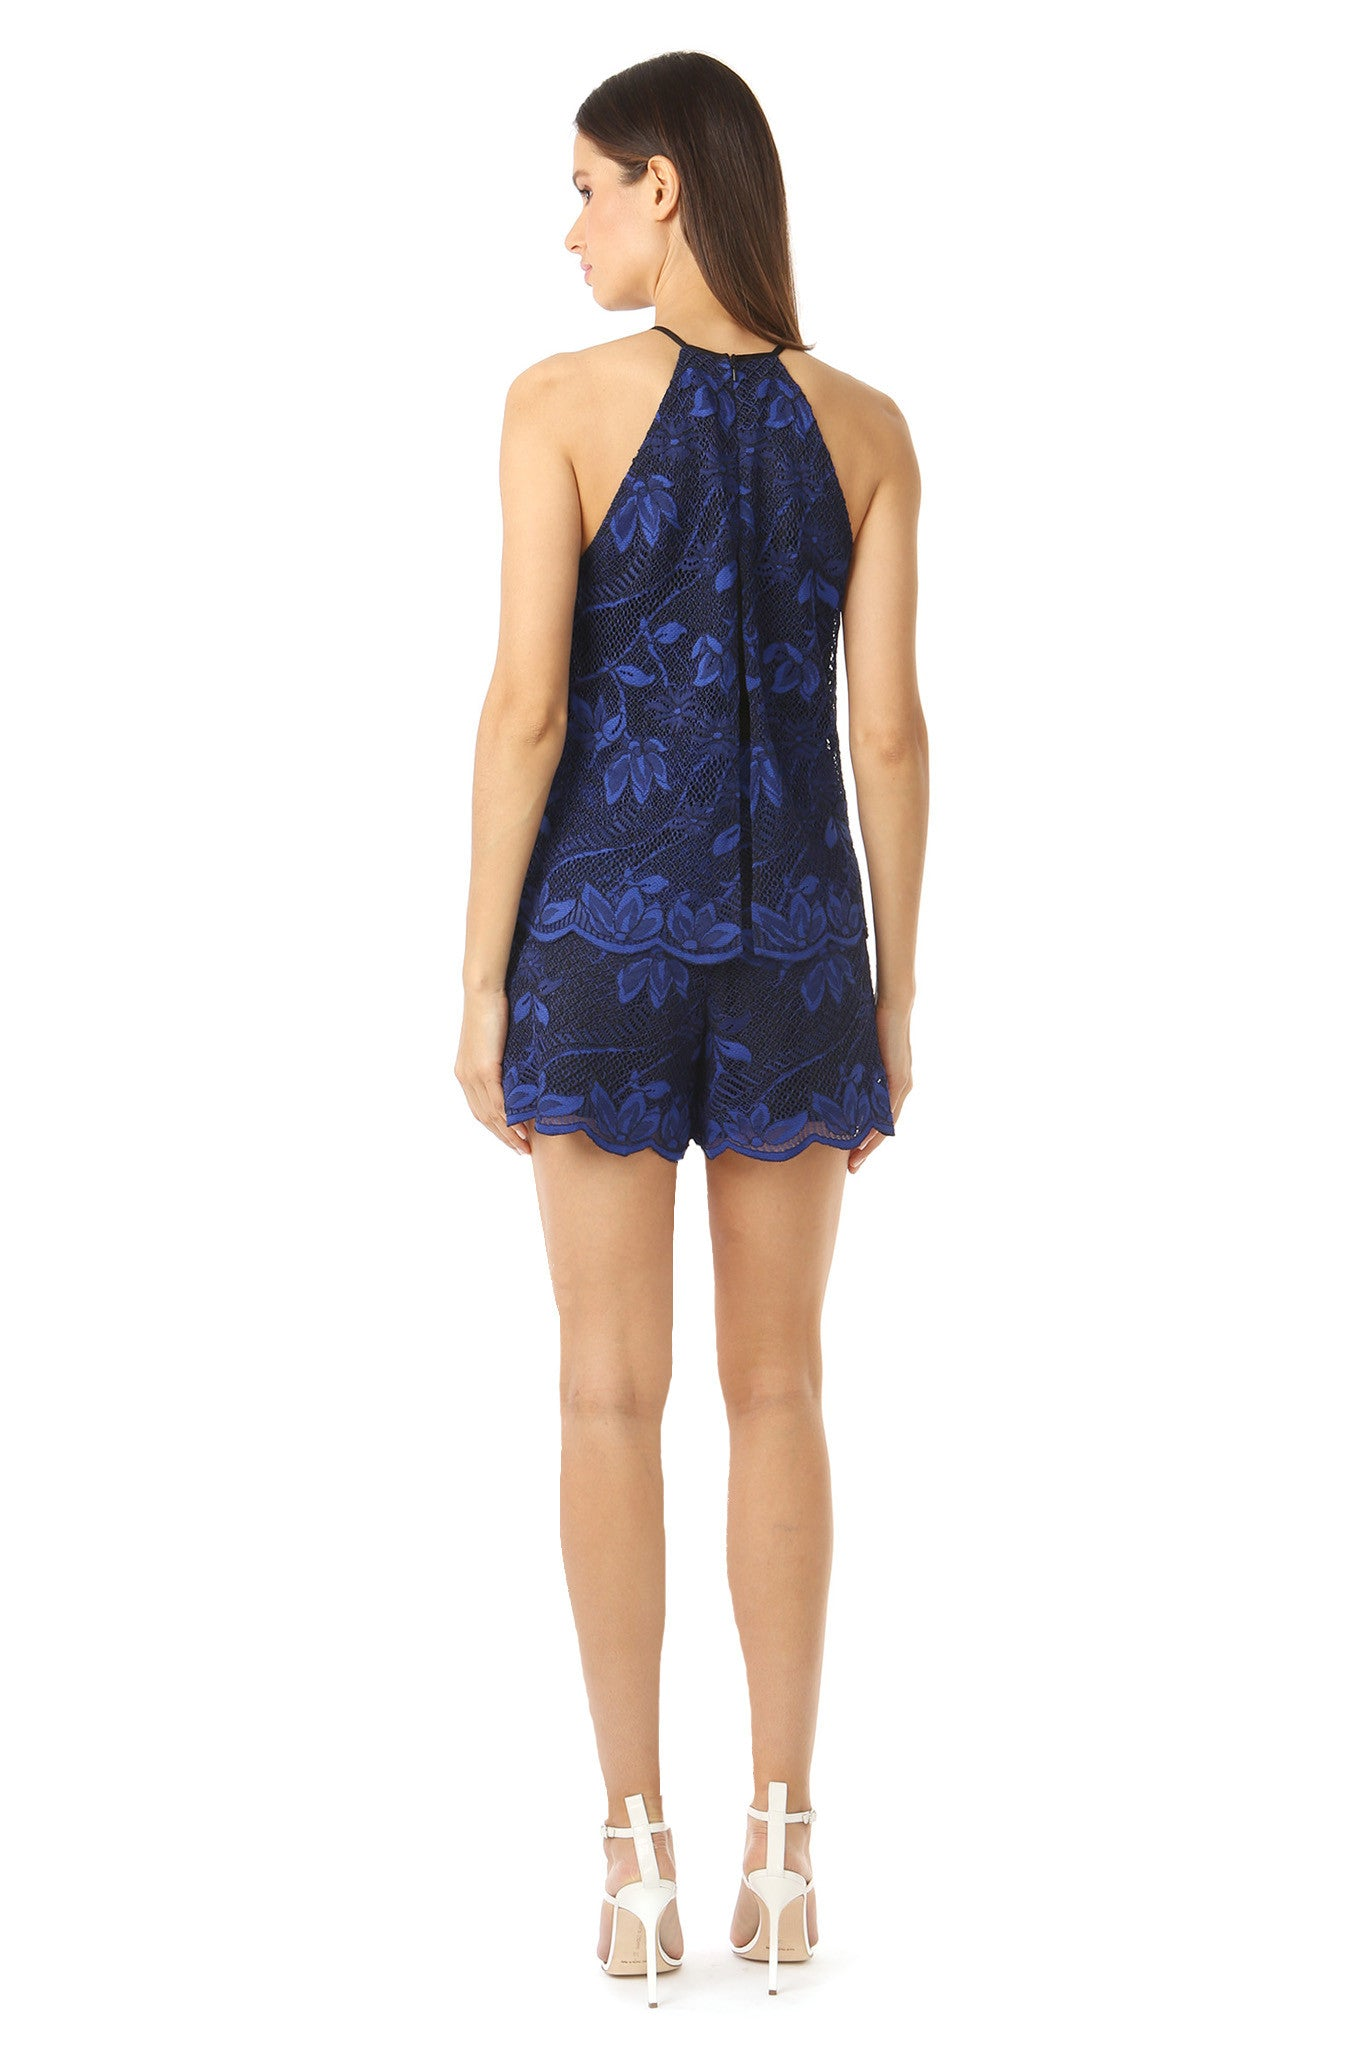 Jay Godfrey High Neck Navy Lace Romper - Back View